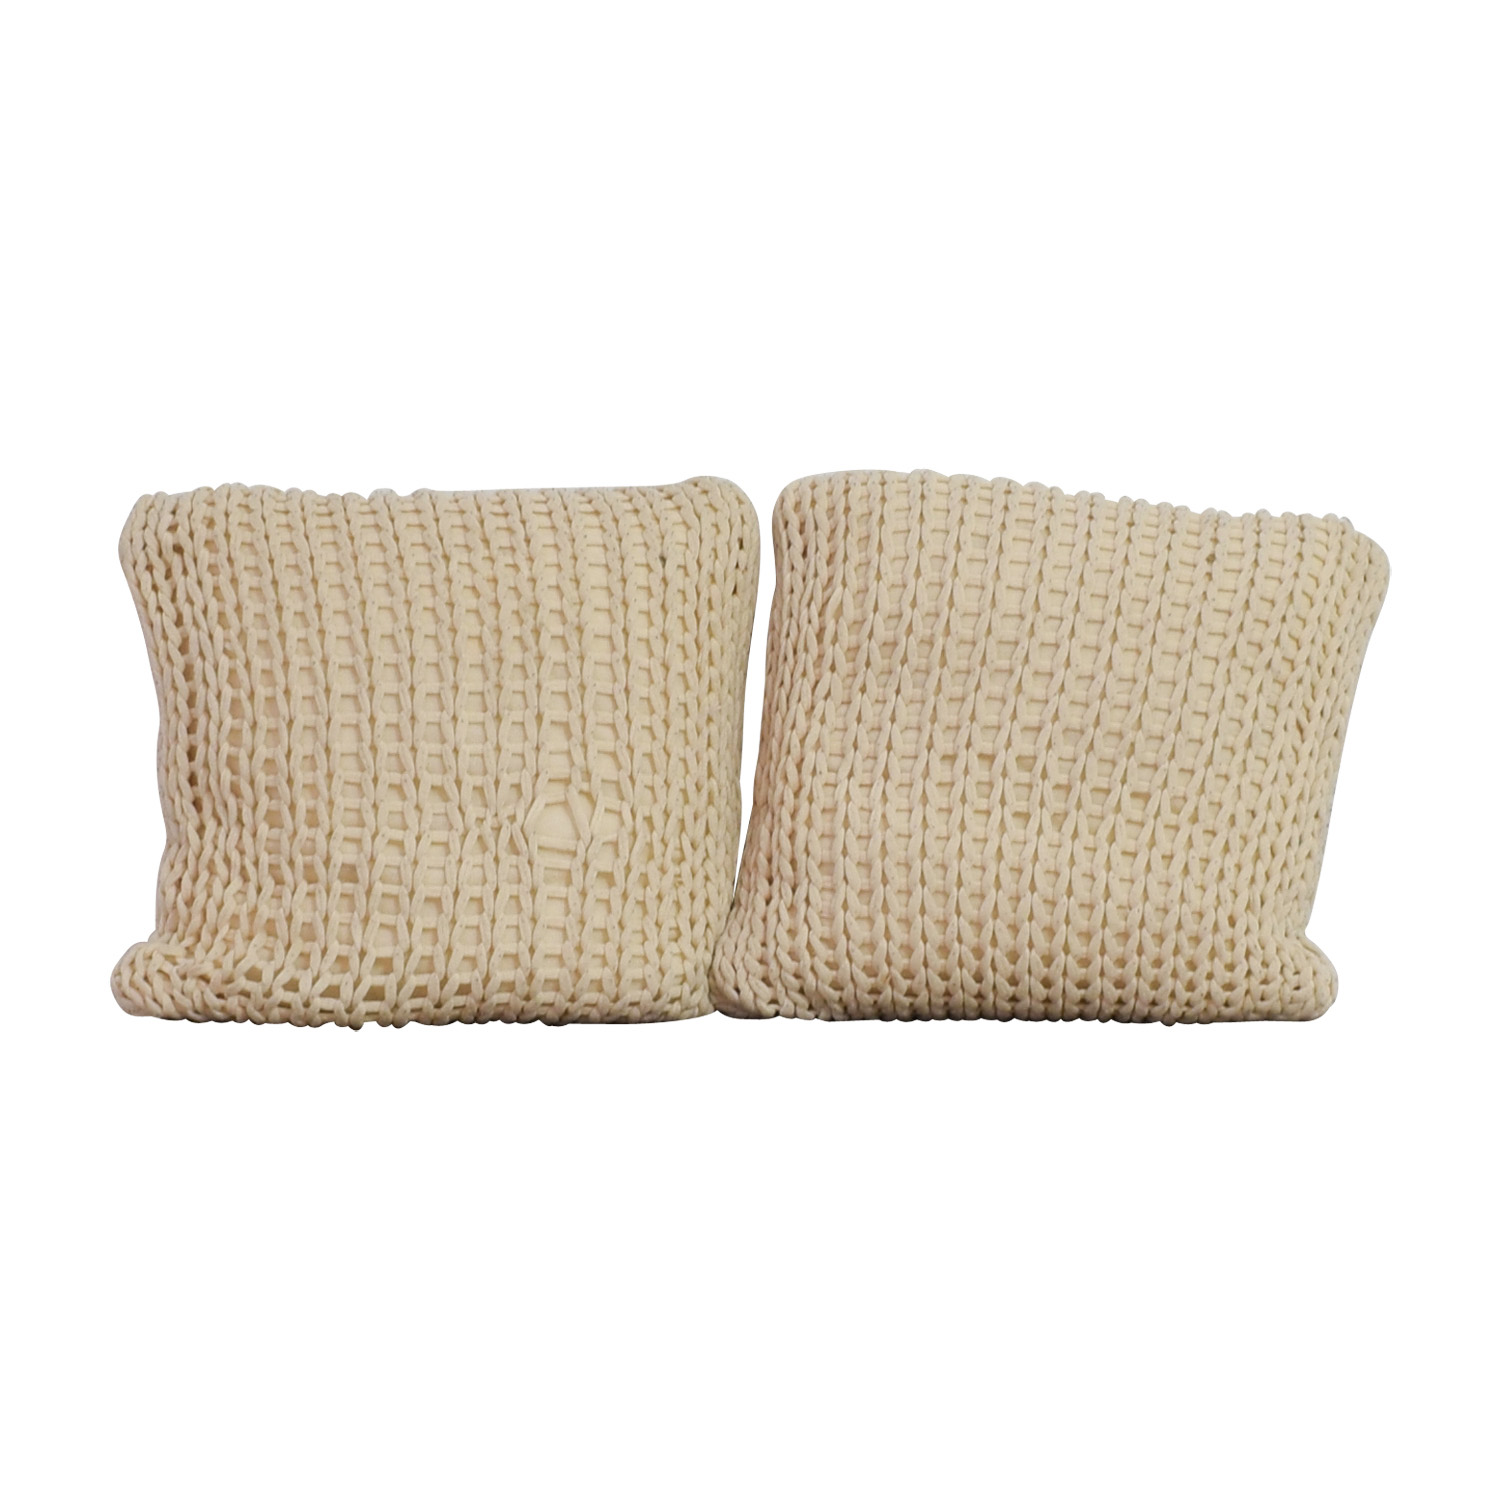 buy Crate & Barrel Ivory Holden Pillows Crate & Barrel